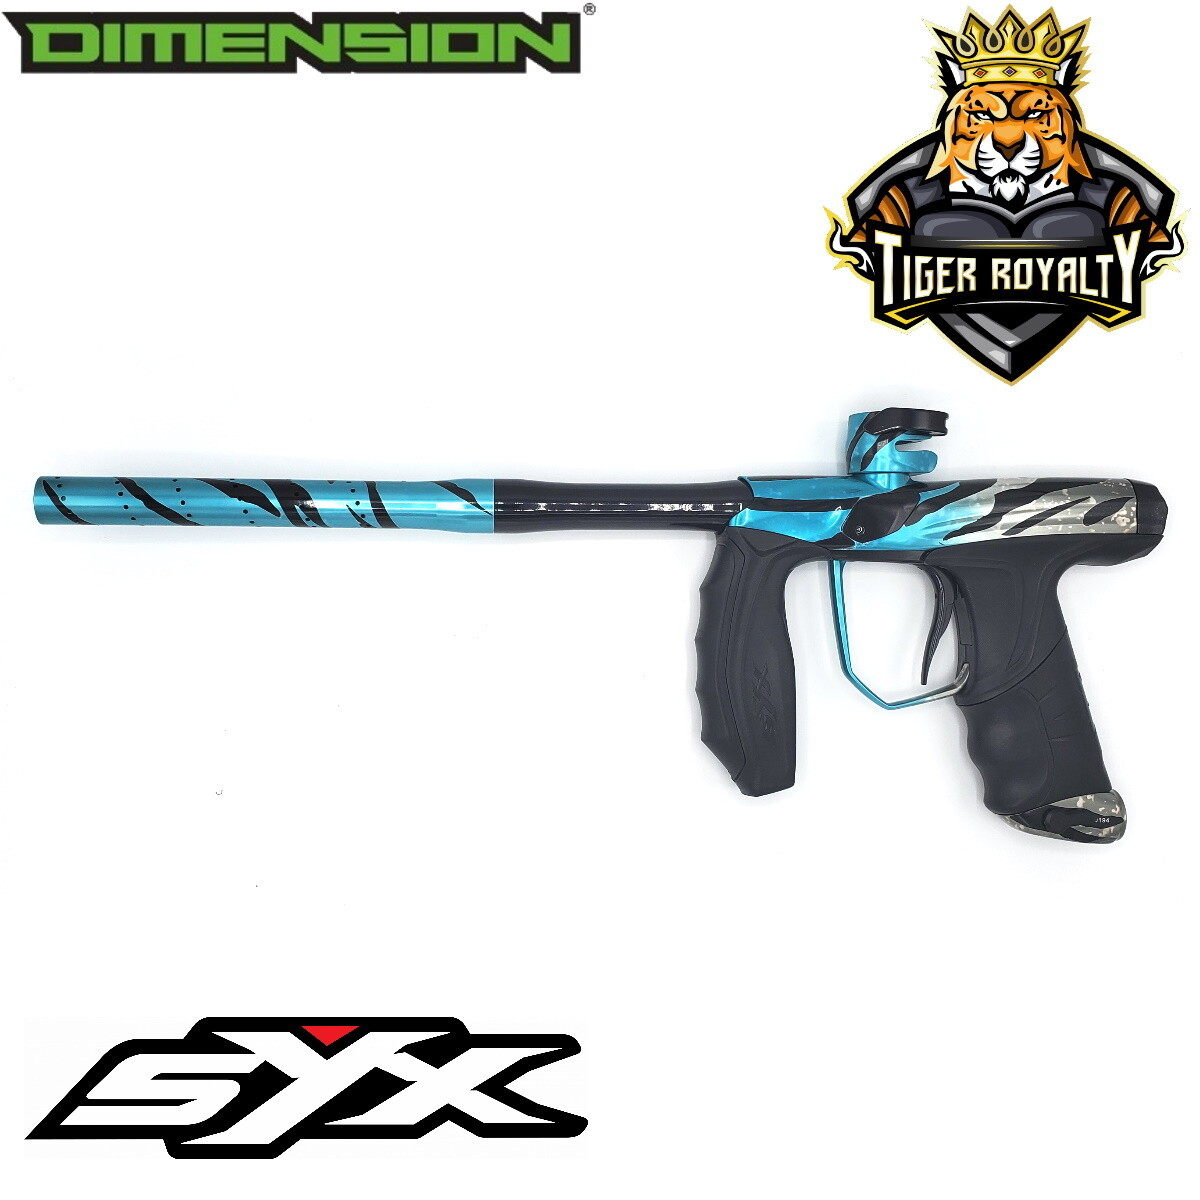 Empire SYX 1.5 - Dimension Limited Edition 1 of 1 / Tiger Royalty - Mist